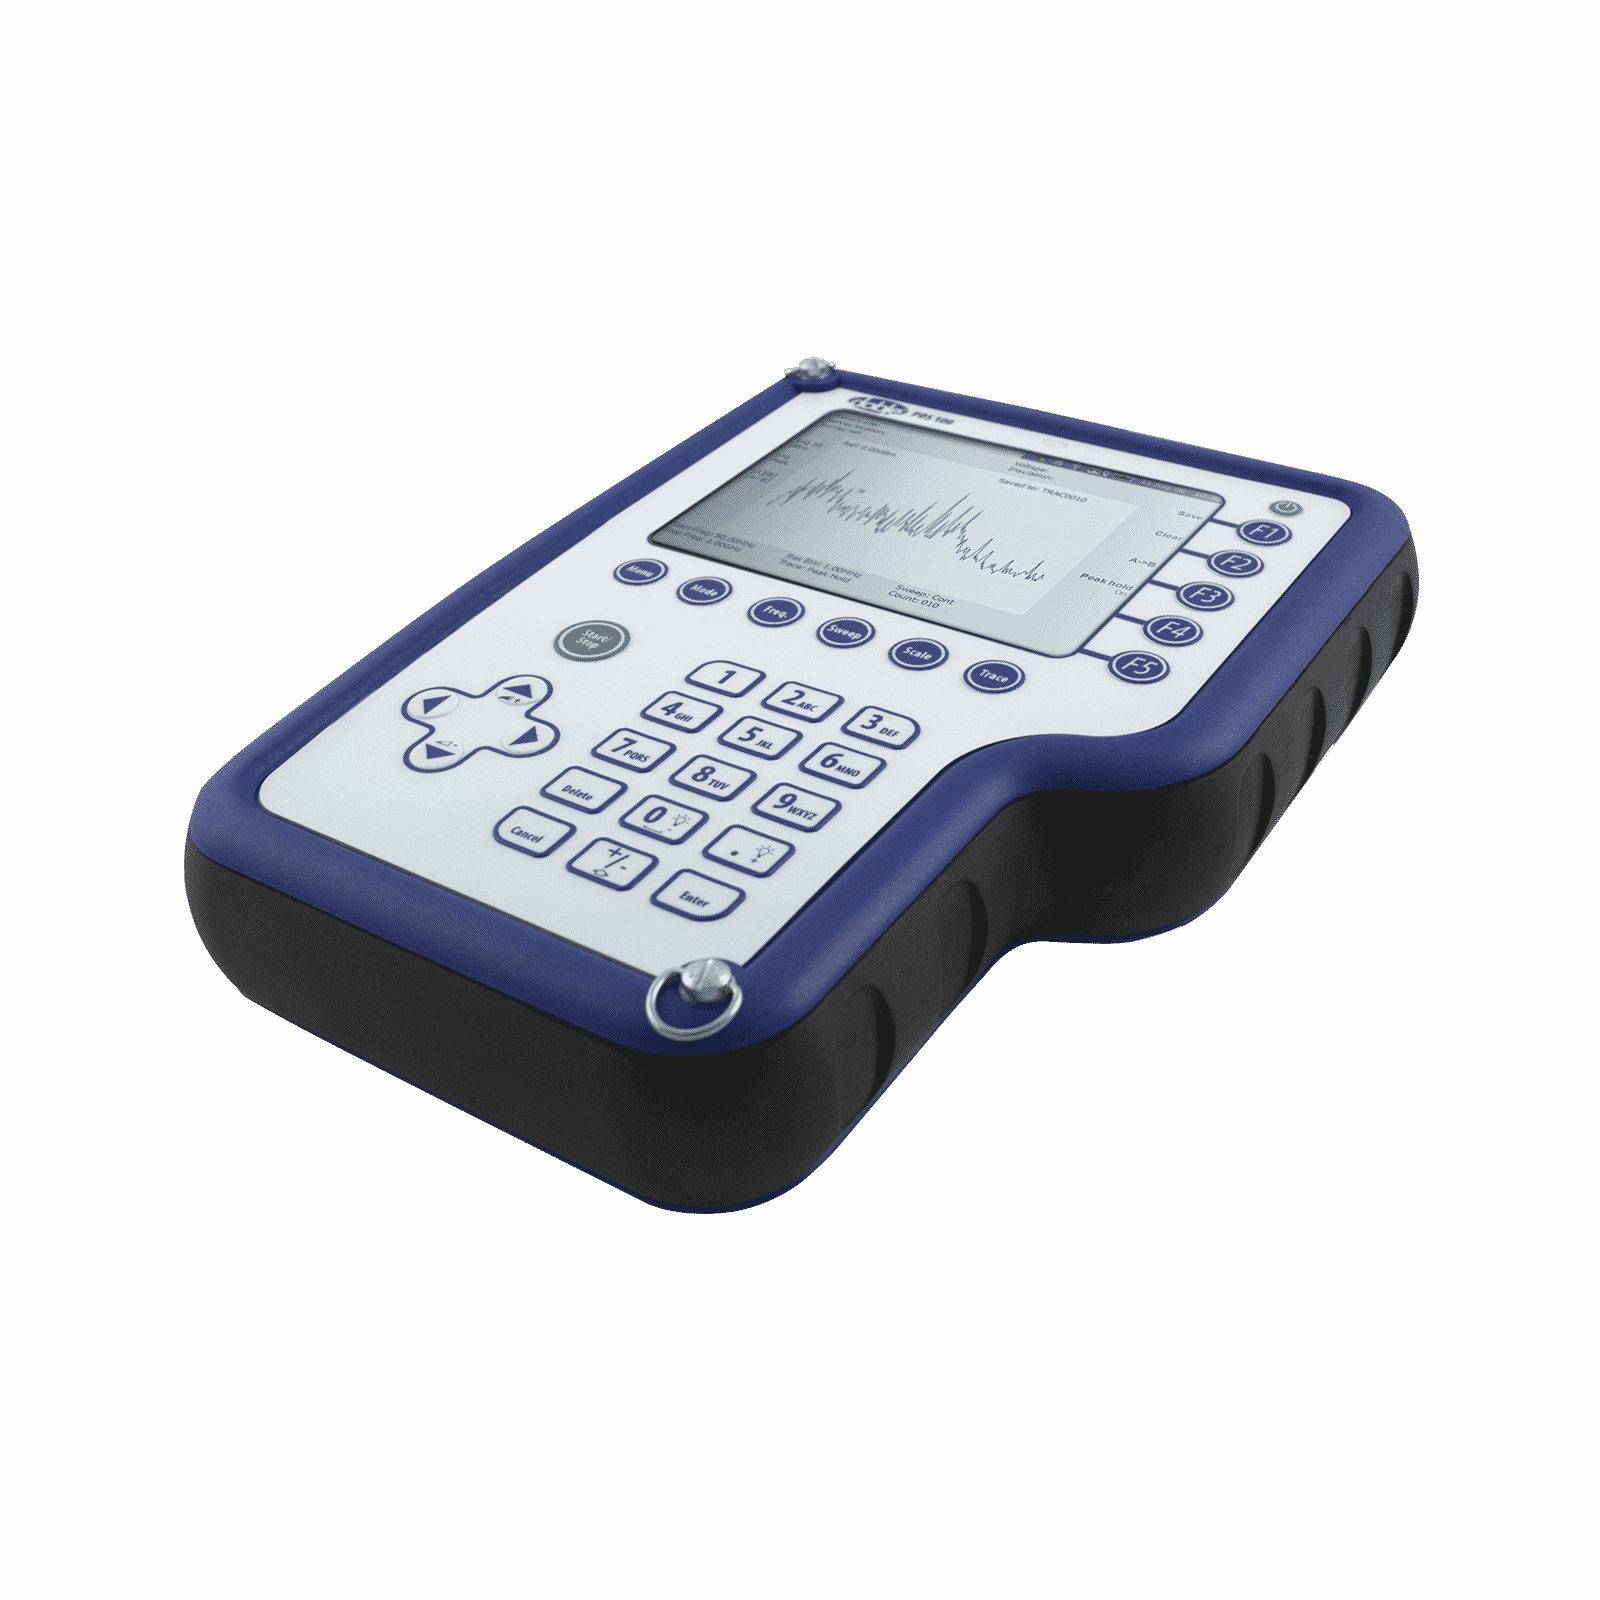 PDS100 for Partial Discharge Measurement